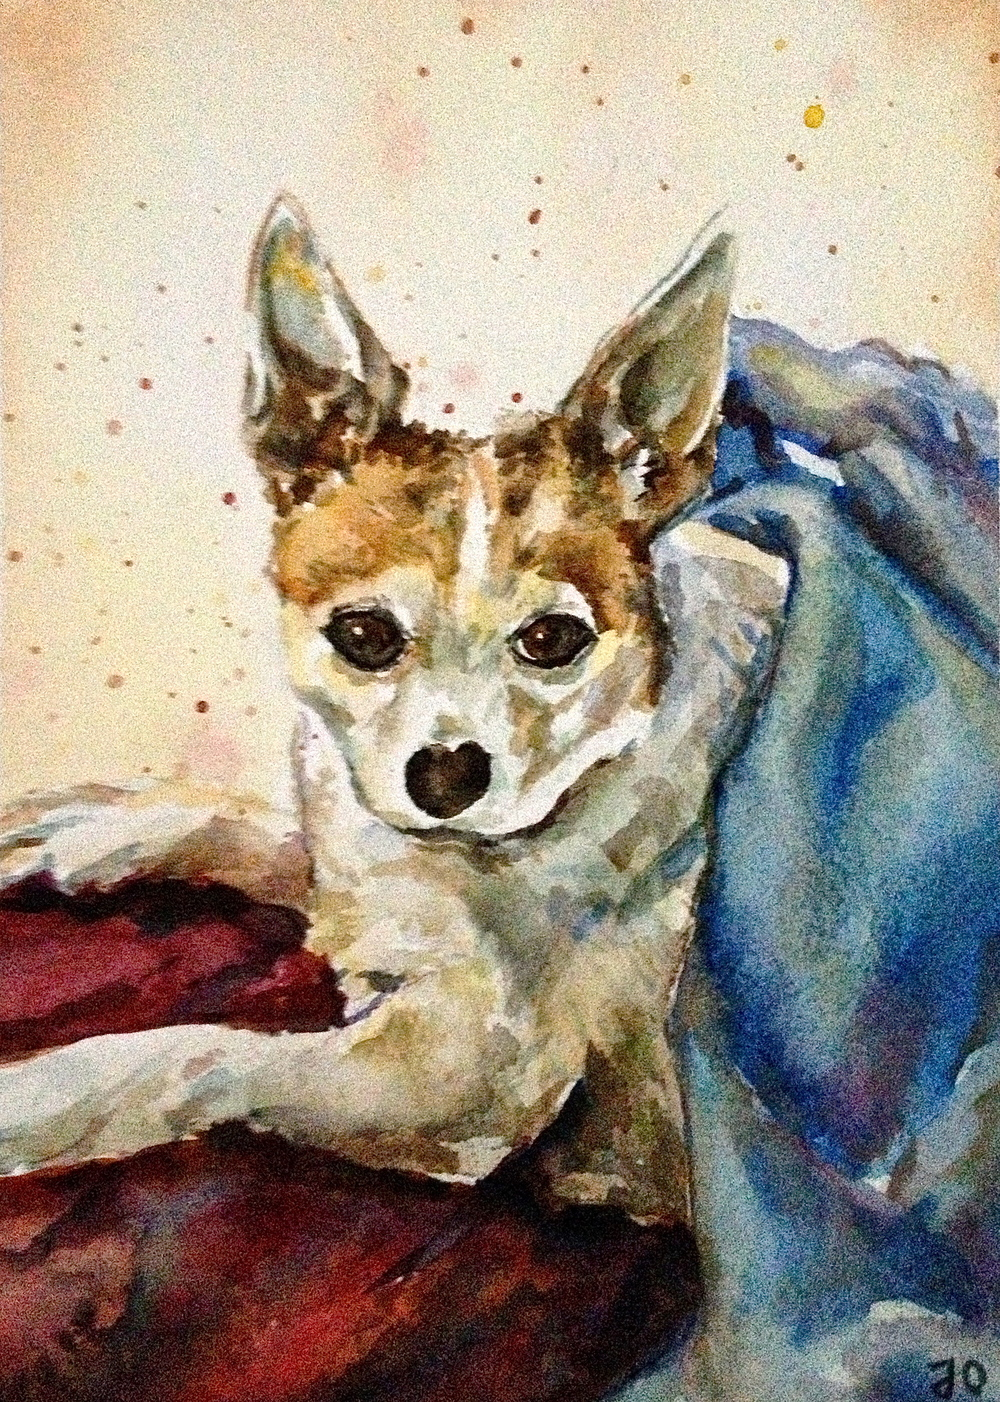 Custom pet portrait                                                      5x7 watercolor                                                  Commissioned - sold